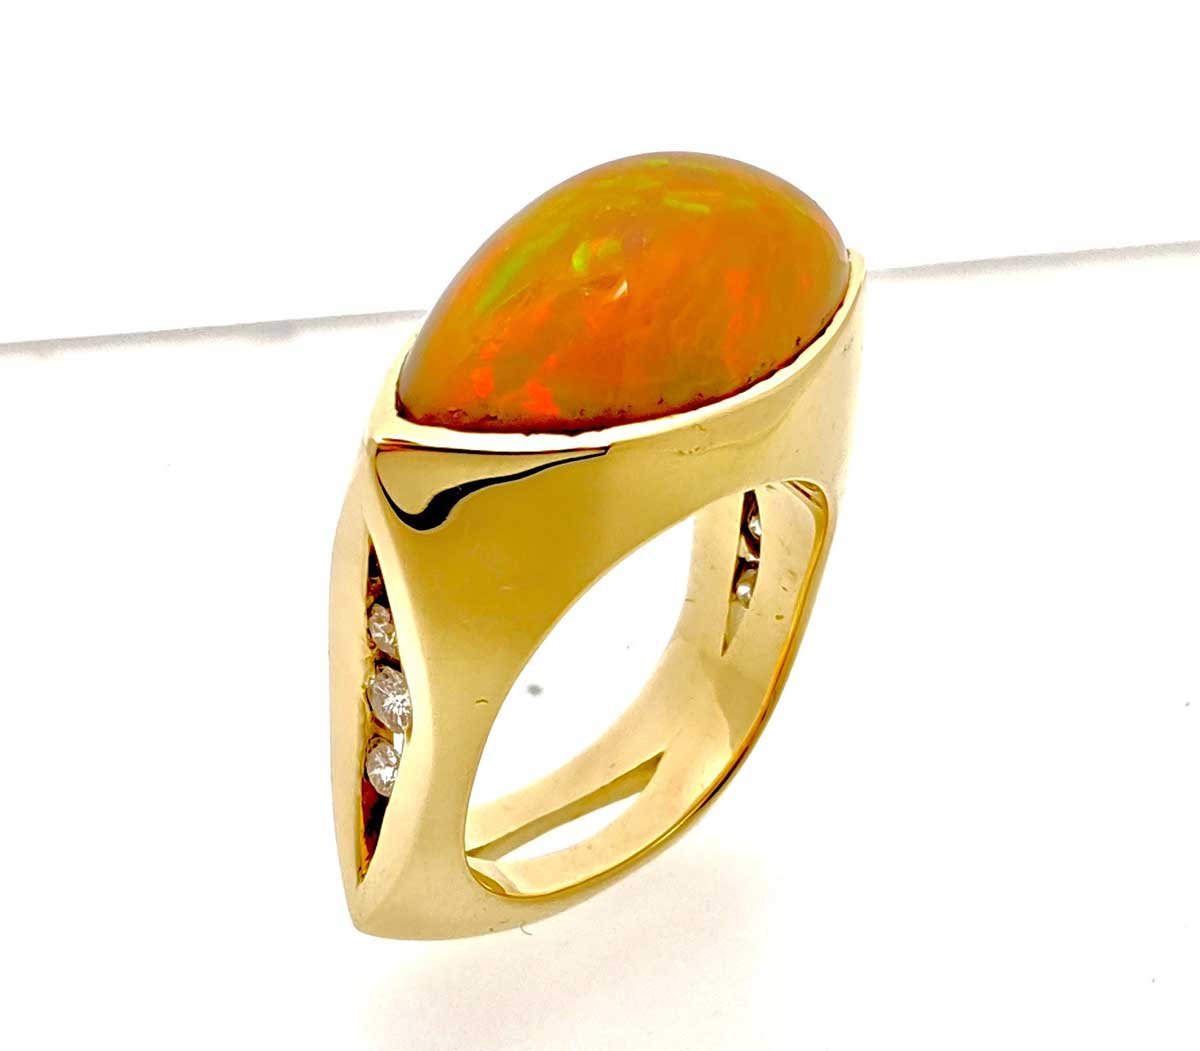 Fire opal, yellow gold and diamond ring